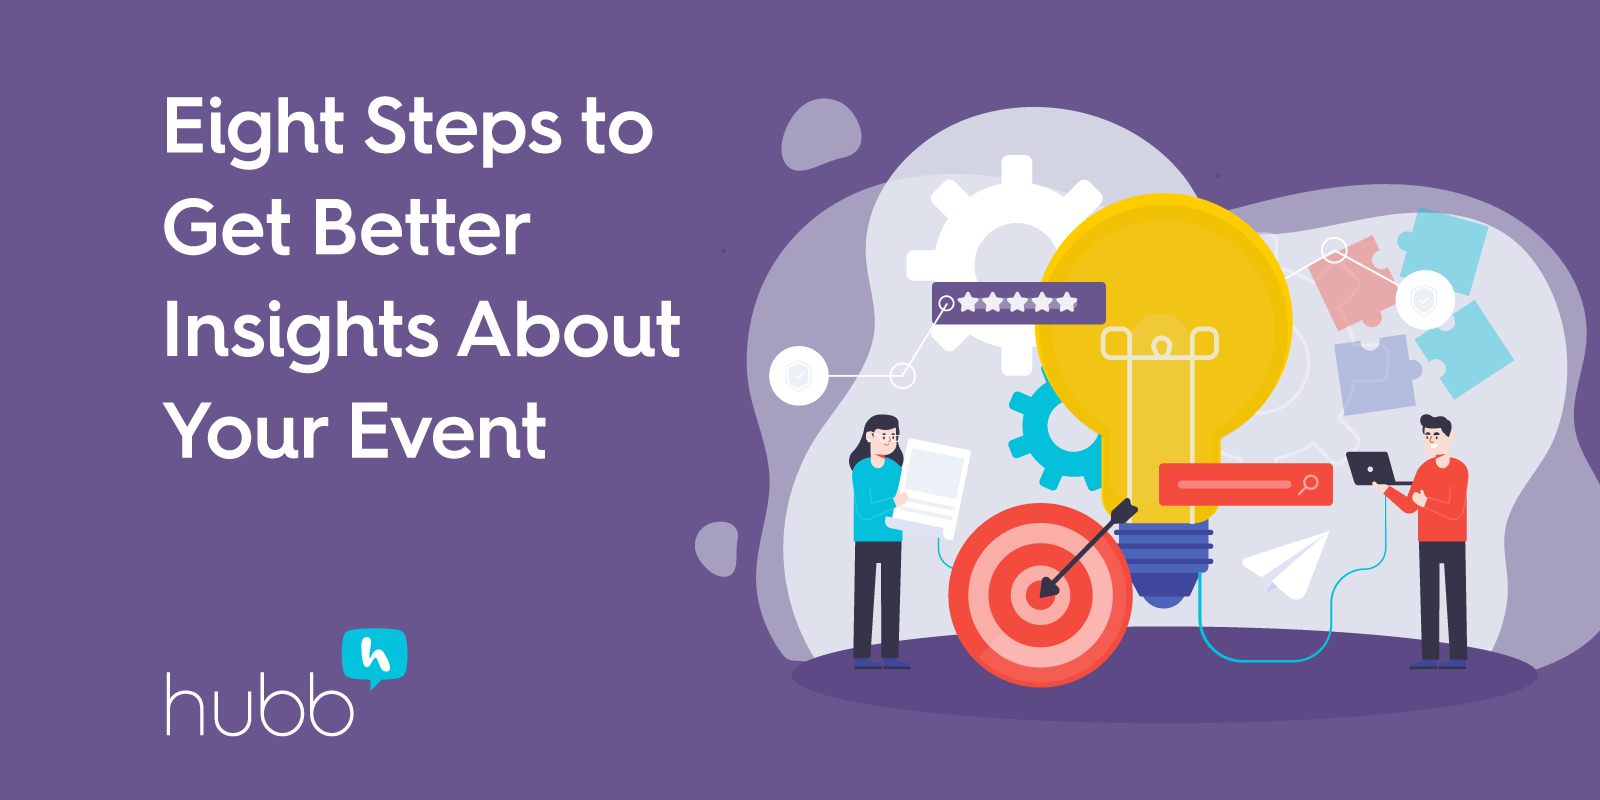 Eight Steps to Get Better Insights About Your Event